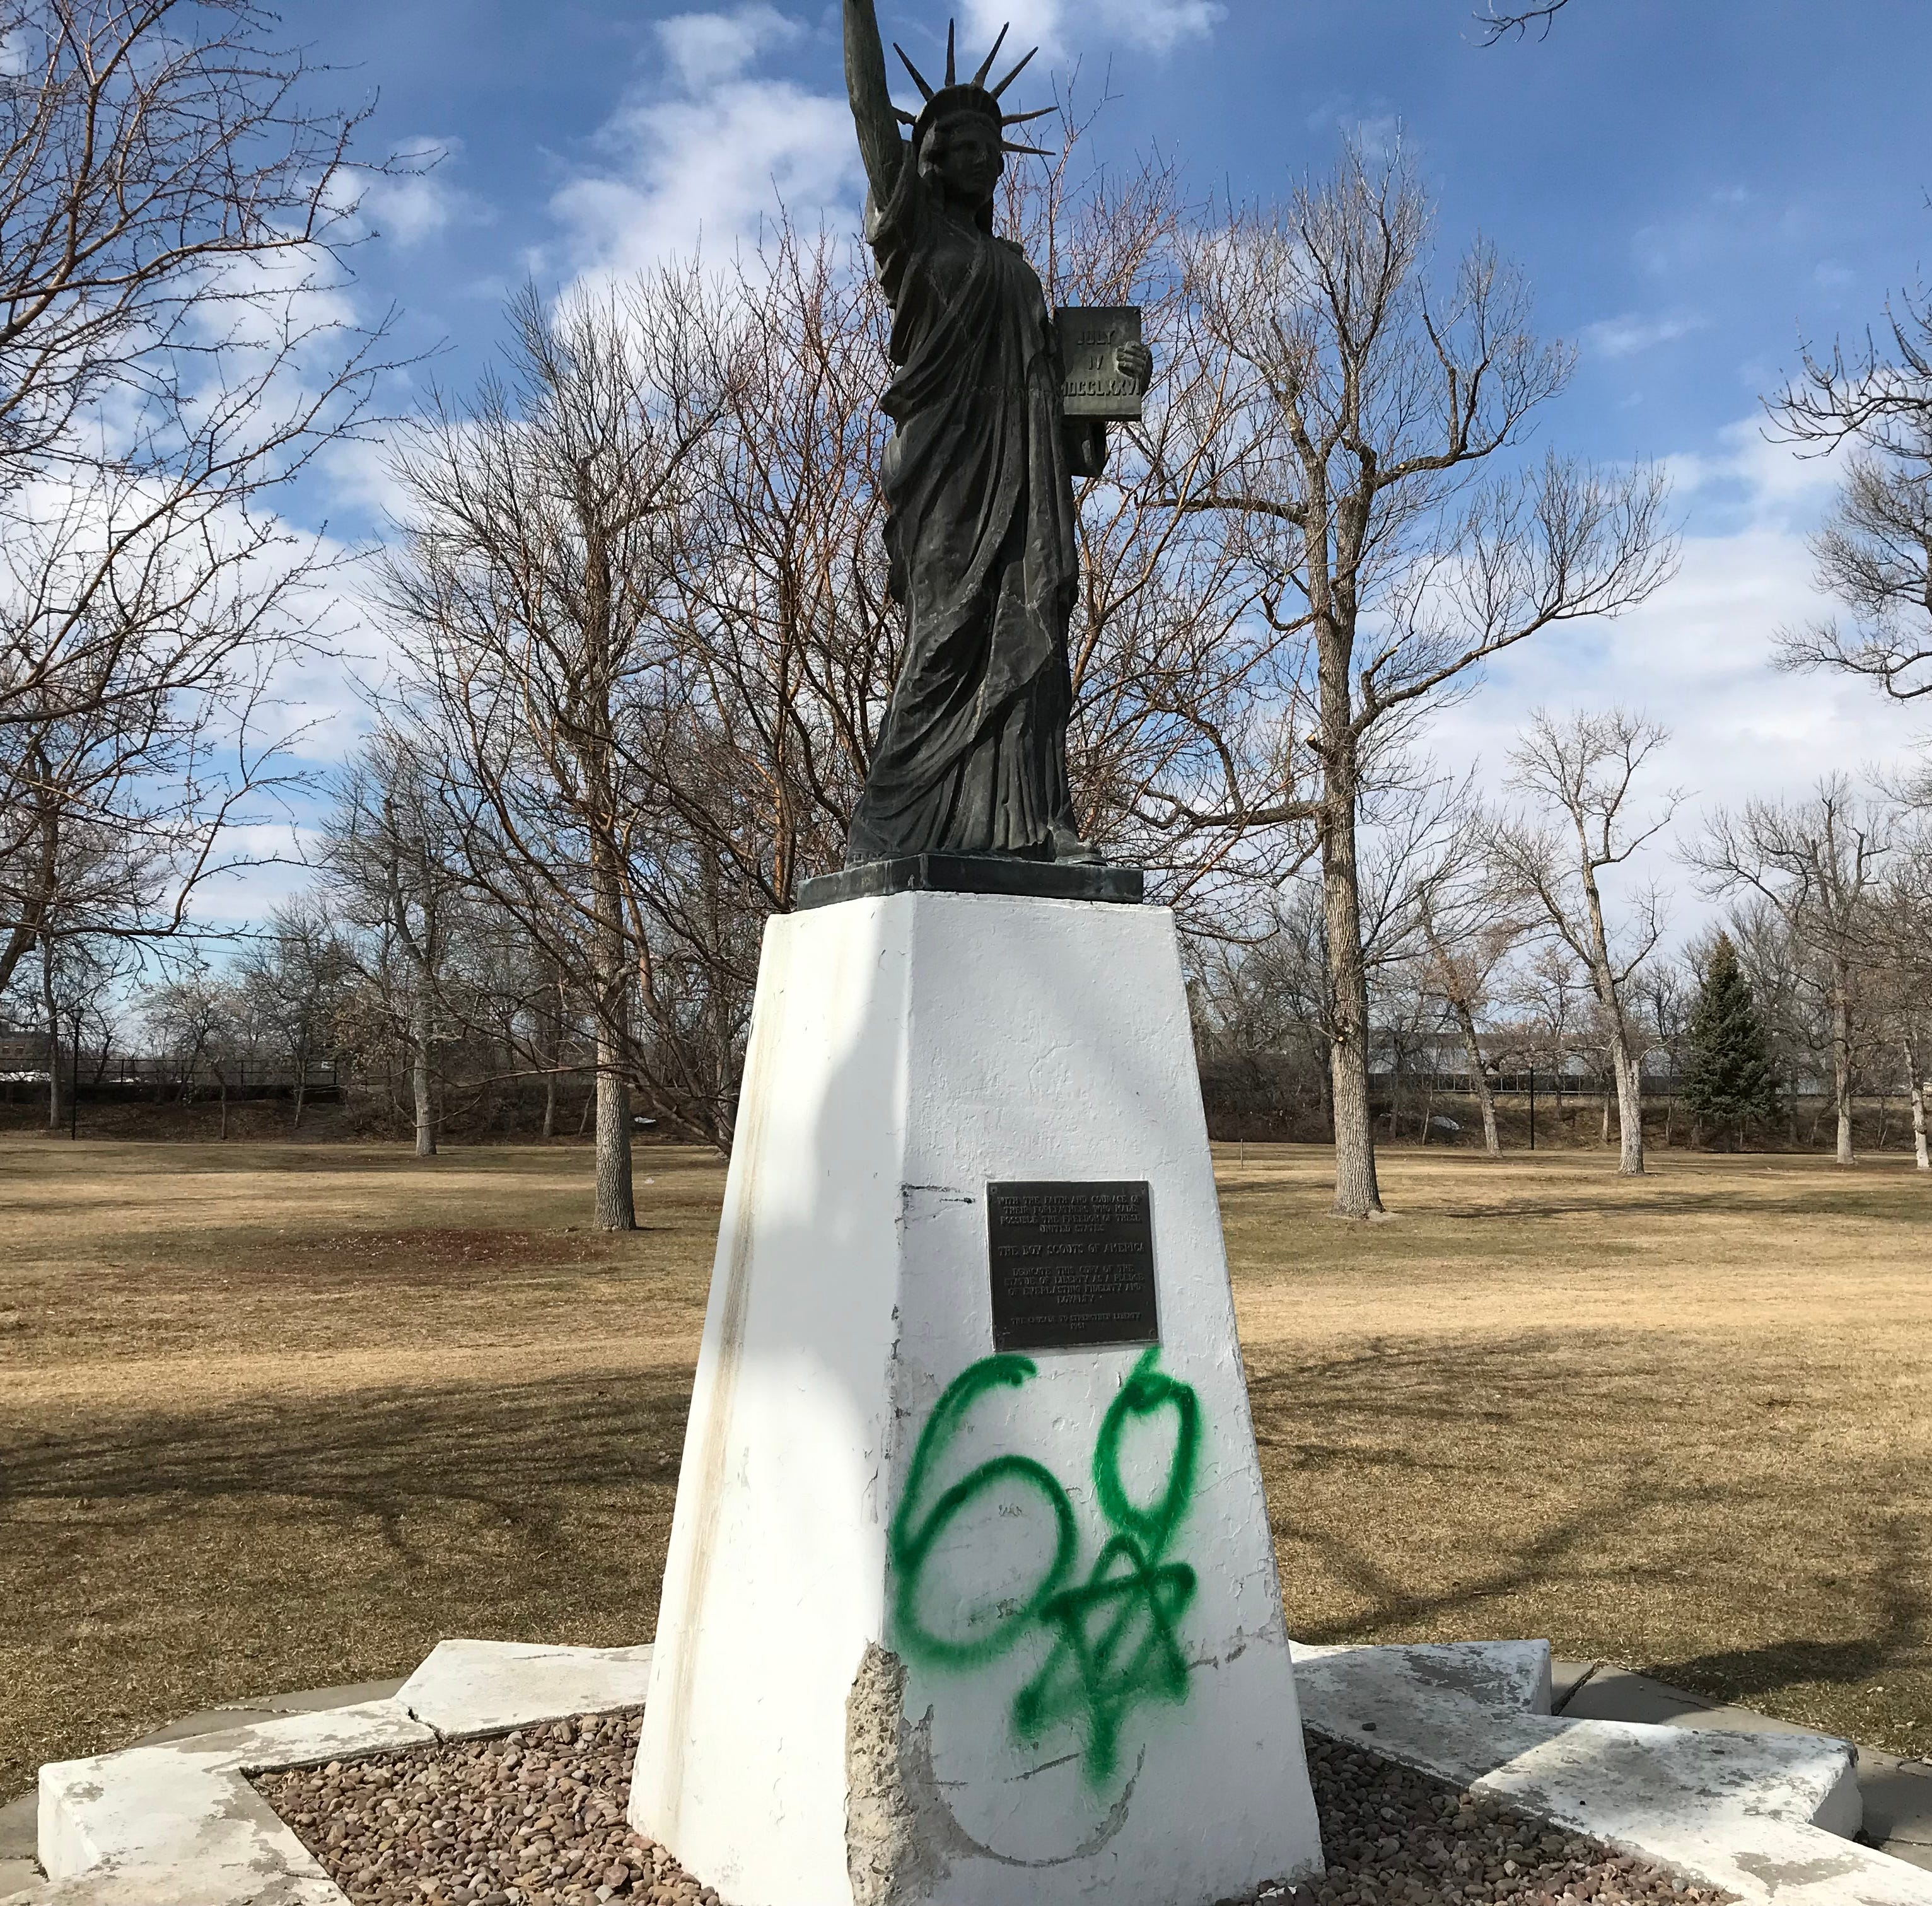 Great Falls Statue of Liberty replica vandalized